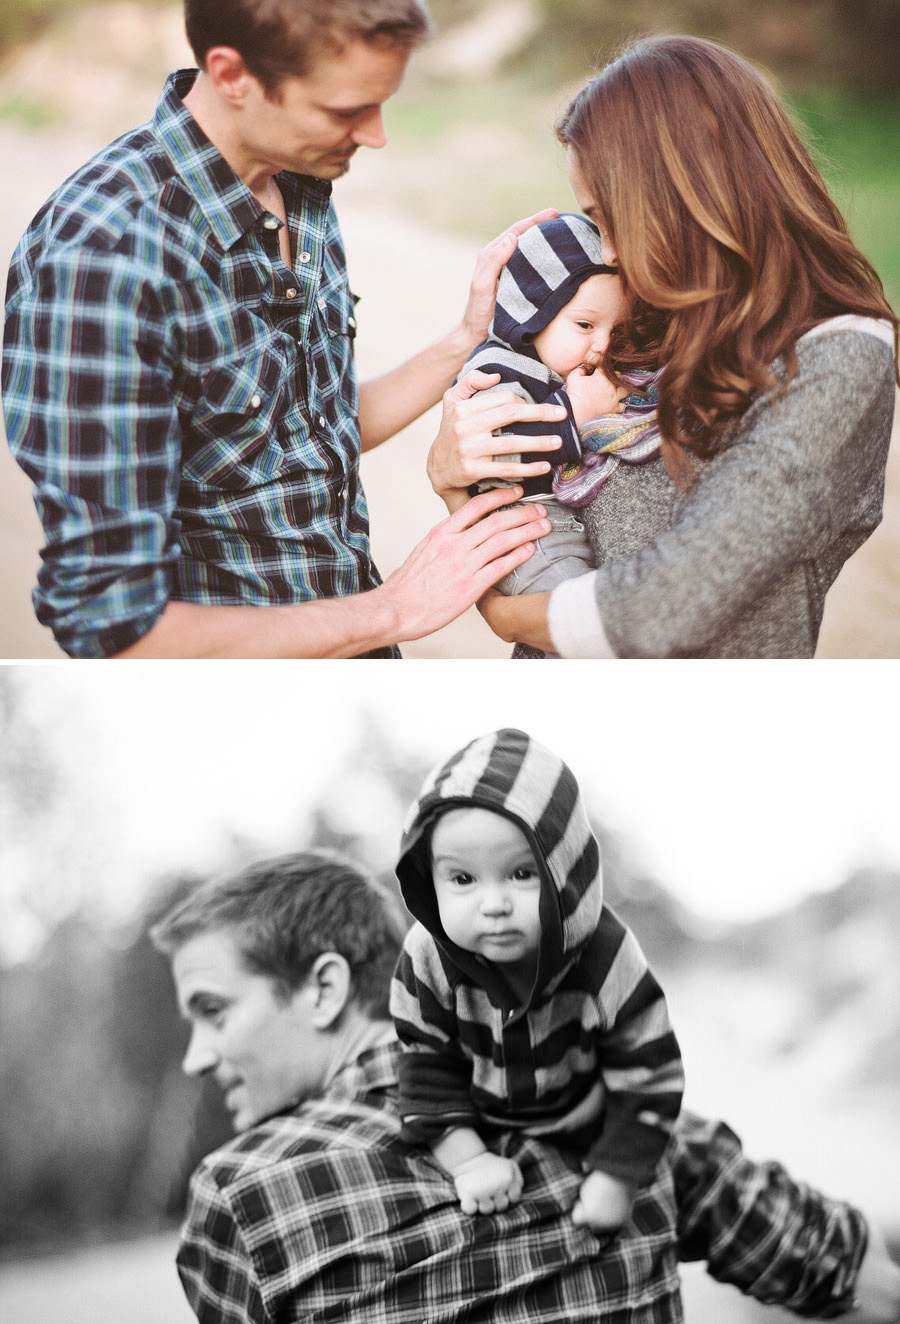 Autumn Resser and Jesse Warren Family Photos at Griffith Observatory 0017